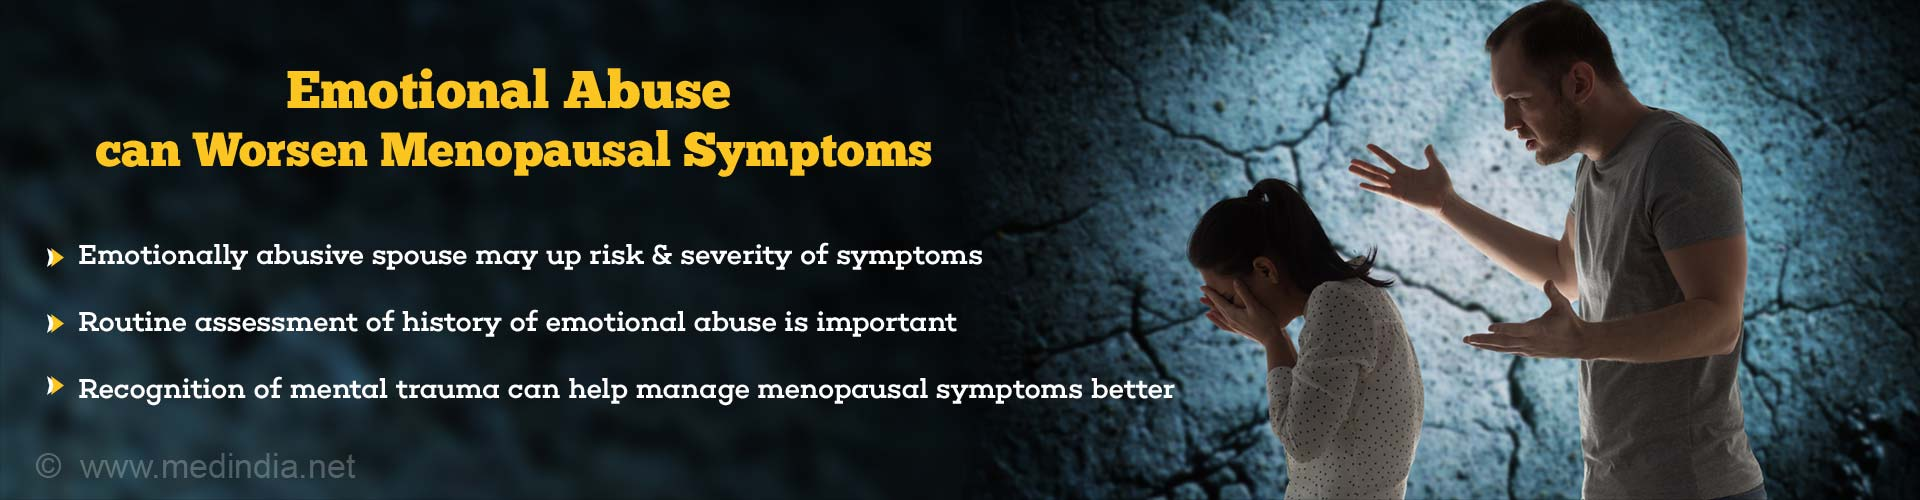 Emotional Abuse Associated With Increase in Menopausal Symptoms